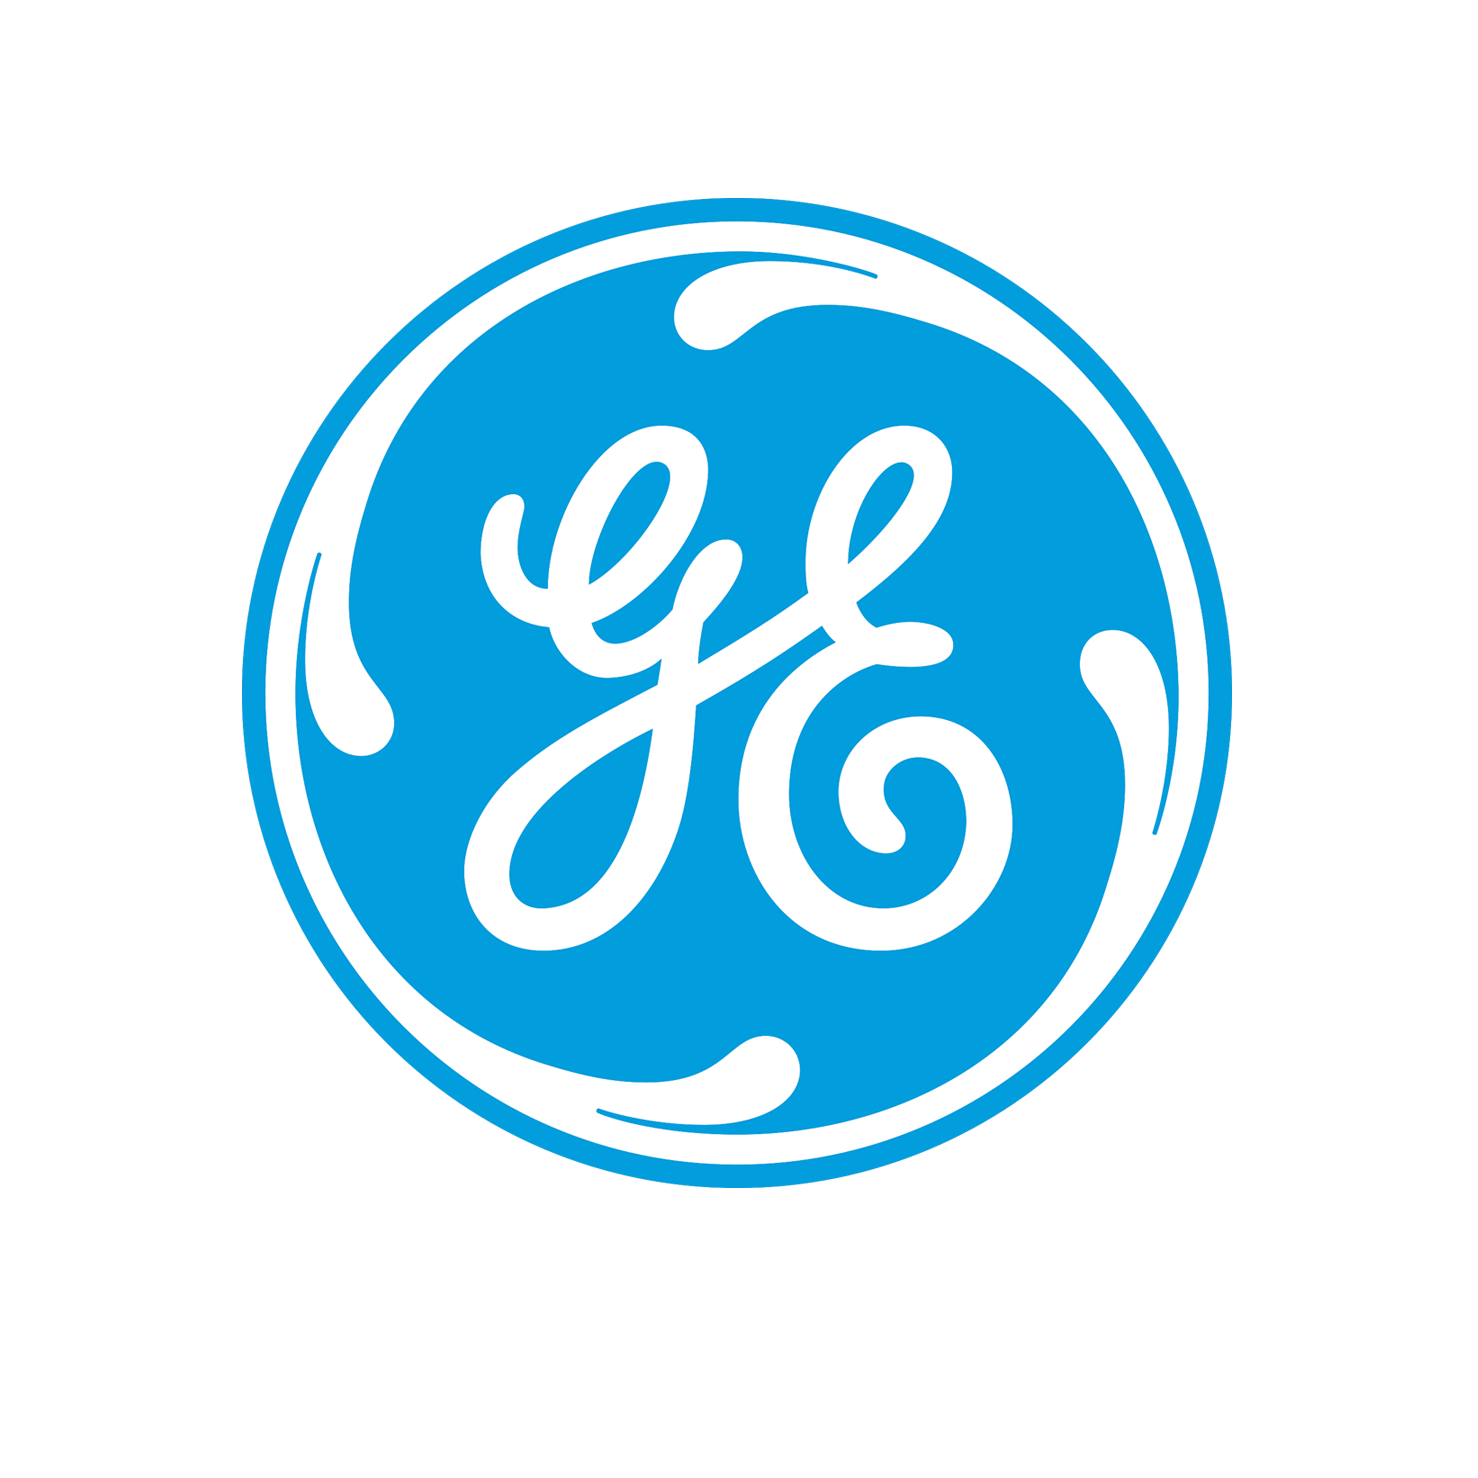 General-Electric-GE-logo.png